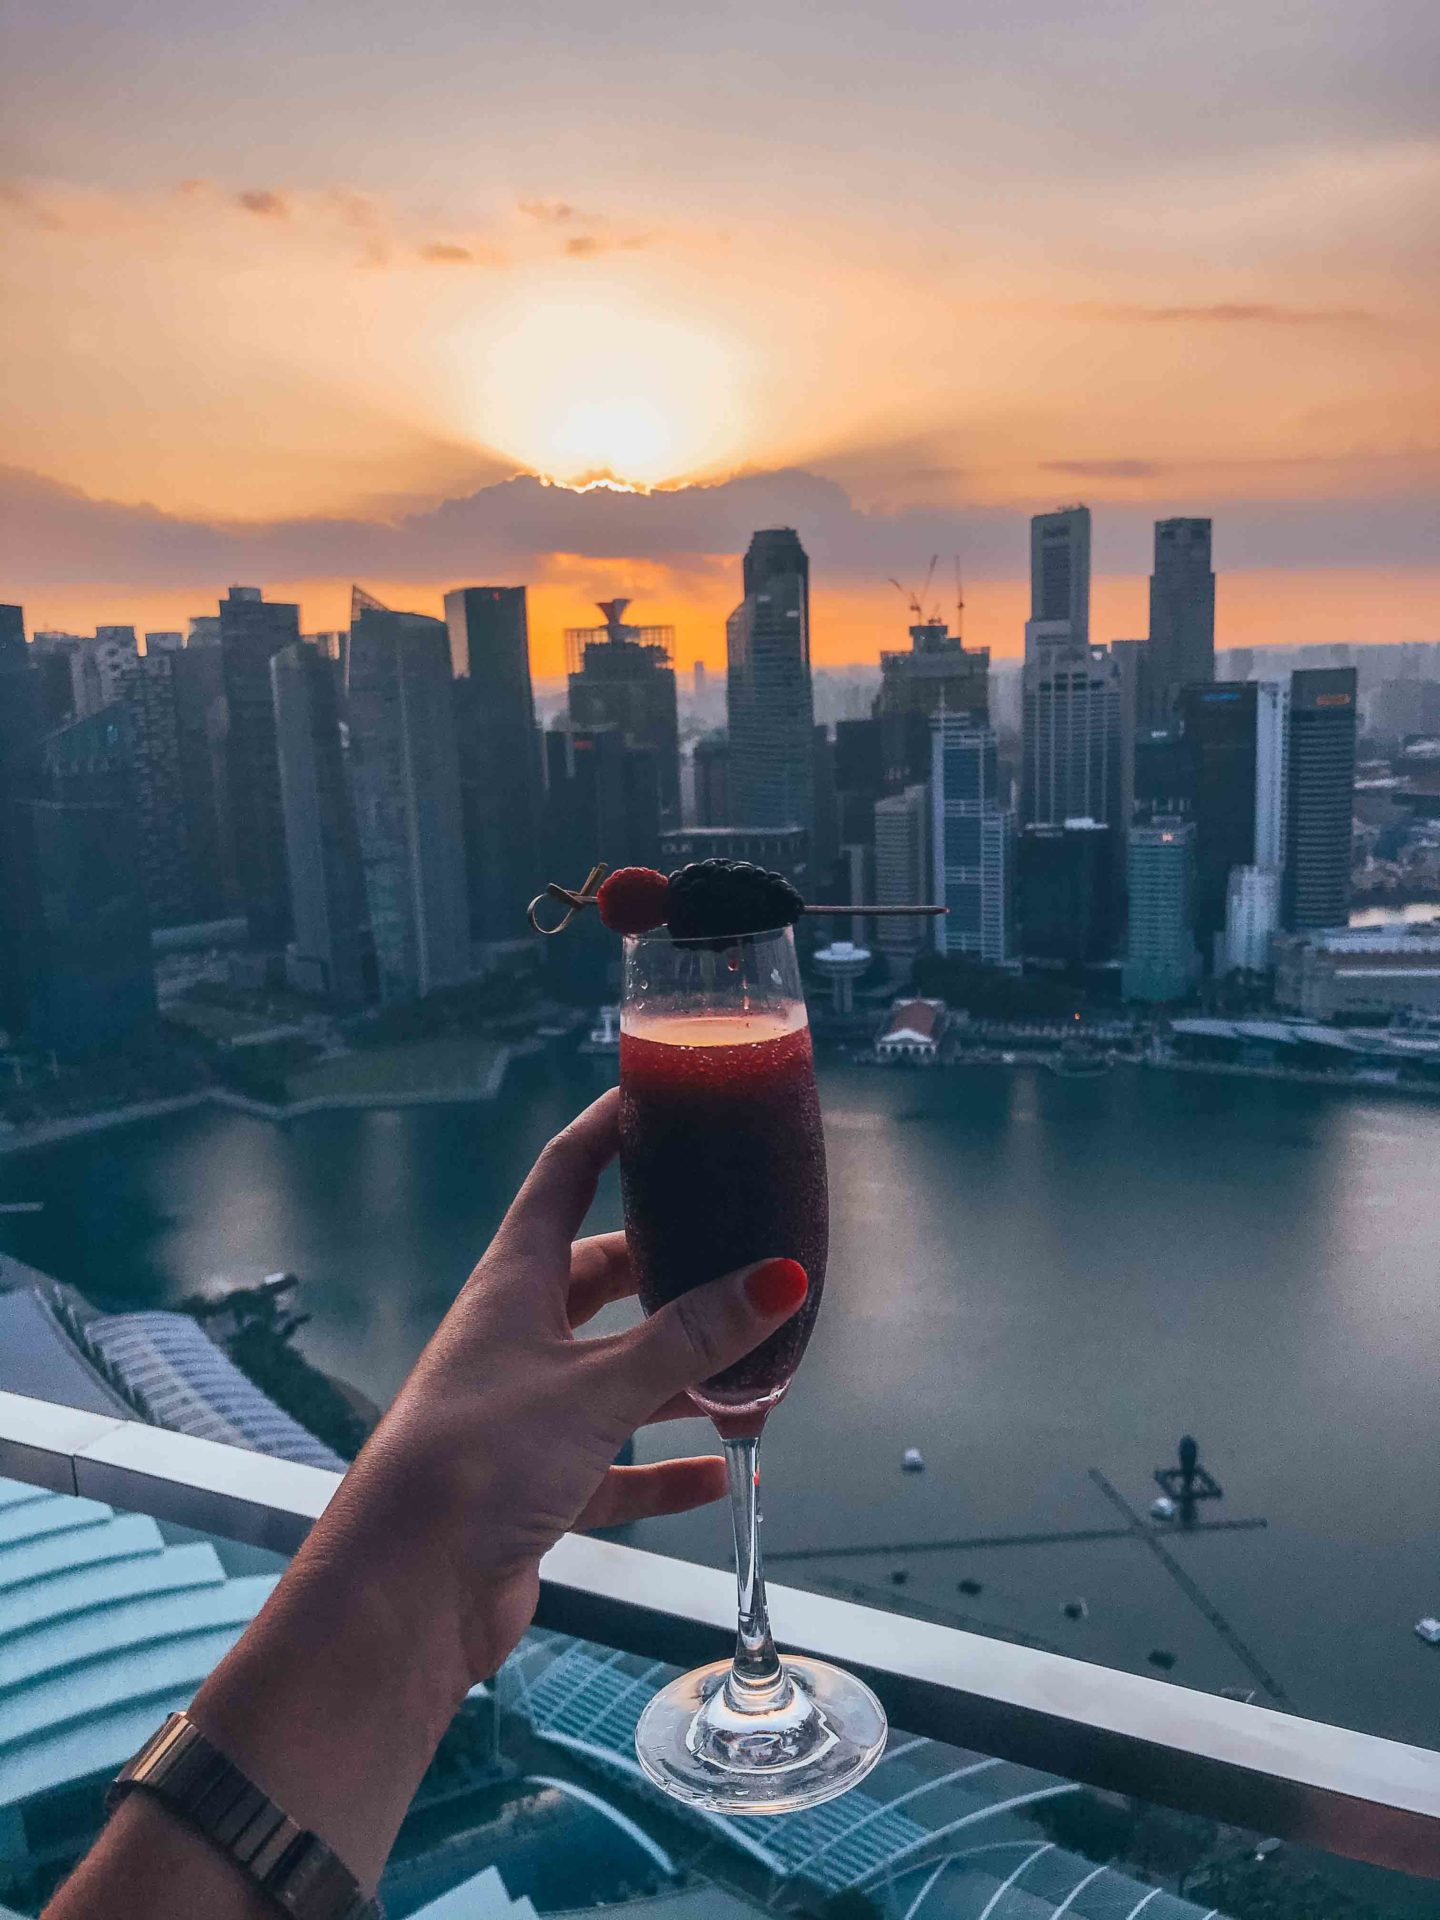 Having a drink at sunset on top of the Marina Bay Sands, Singapore